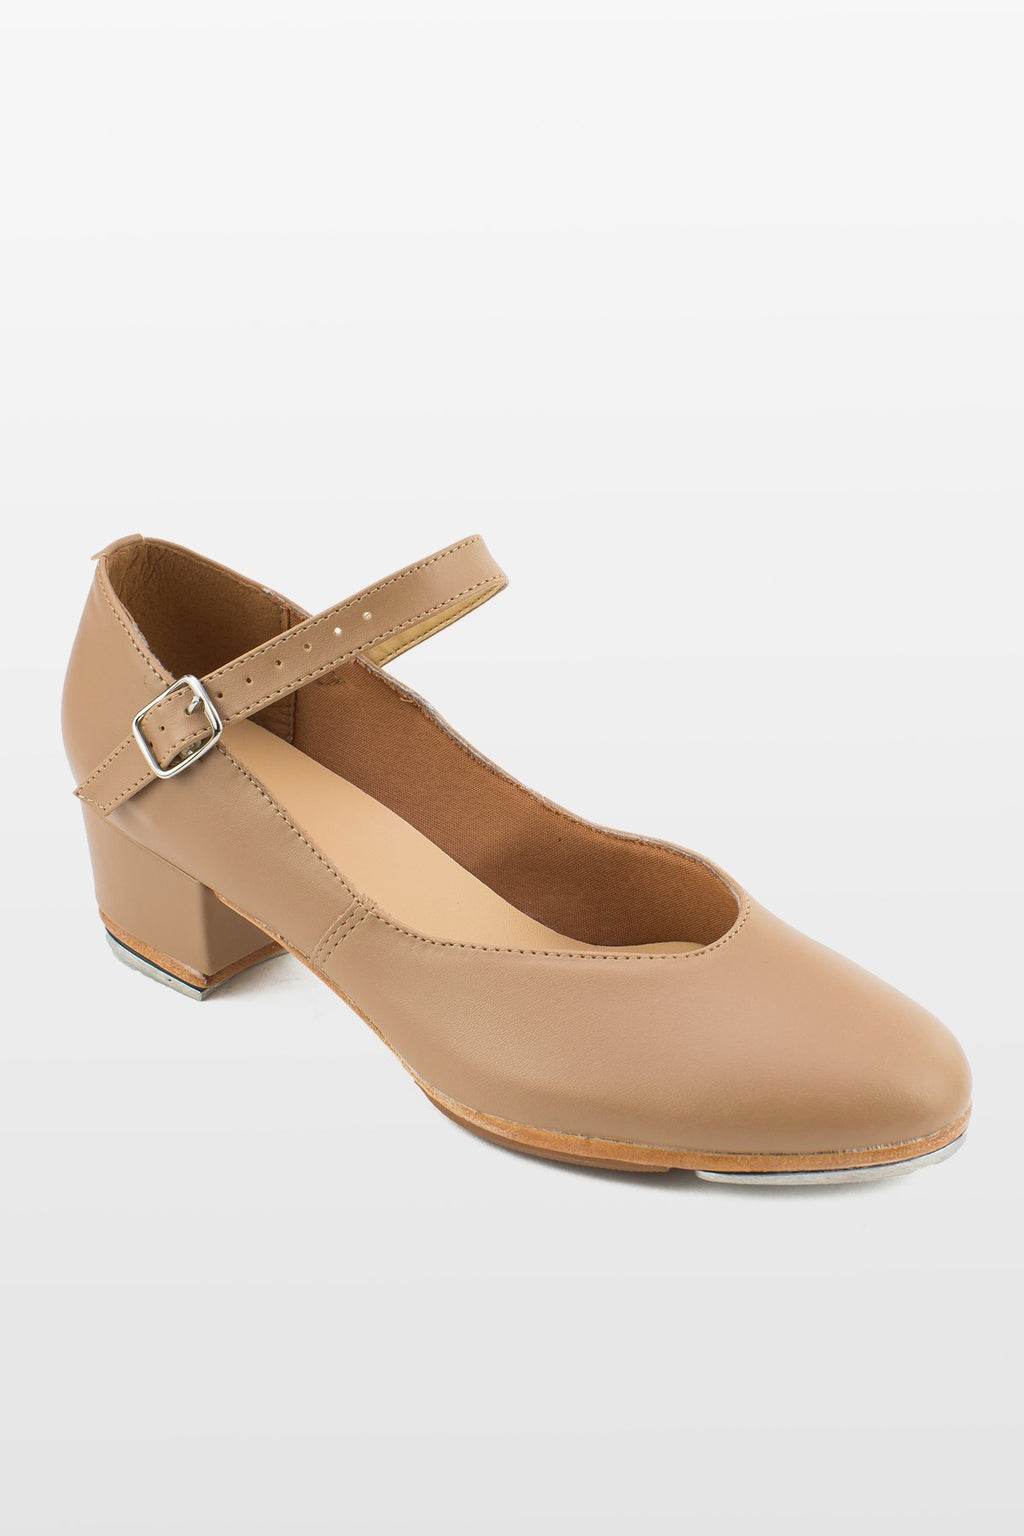 So Danca - So Danca Cuban Heel Tap